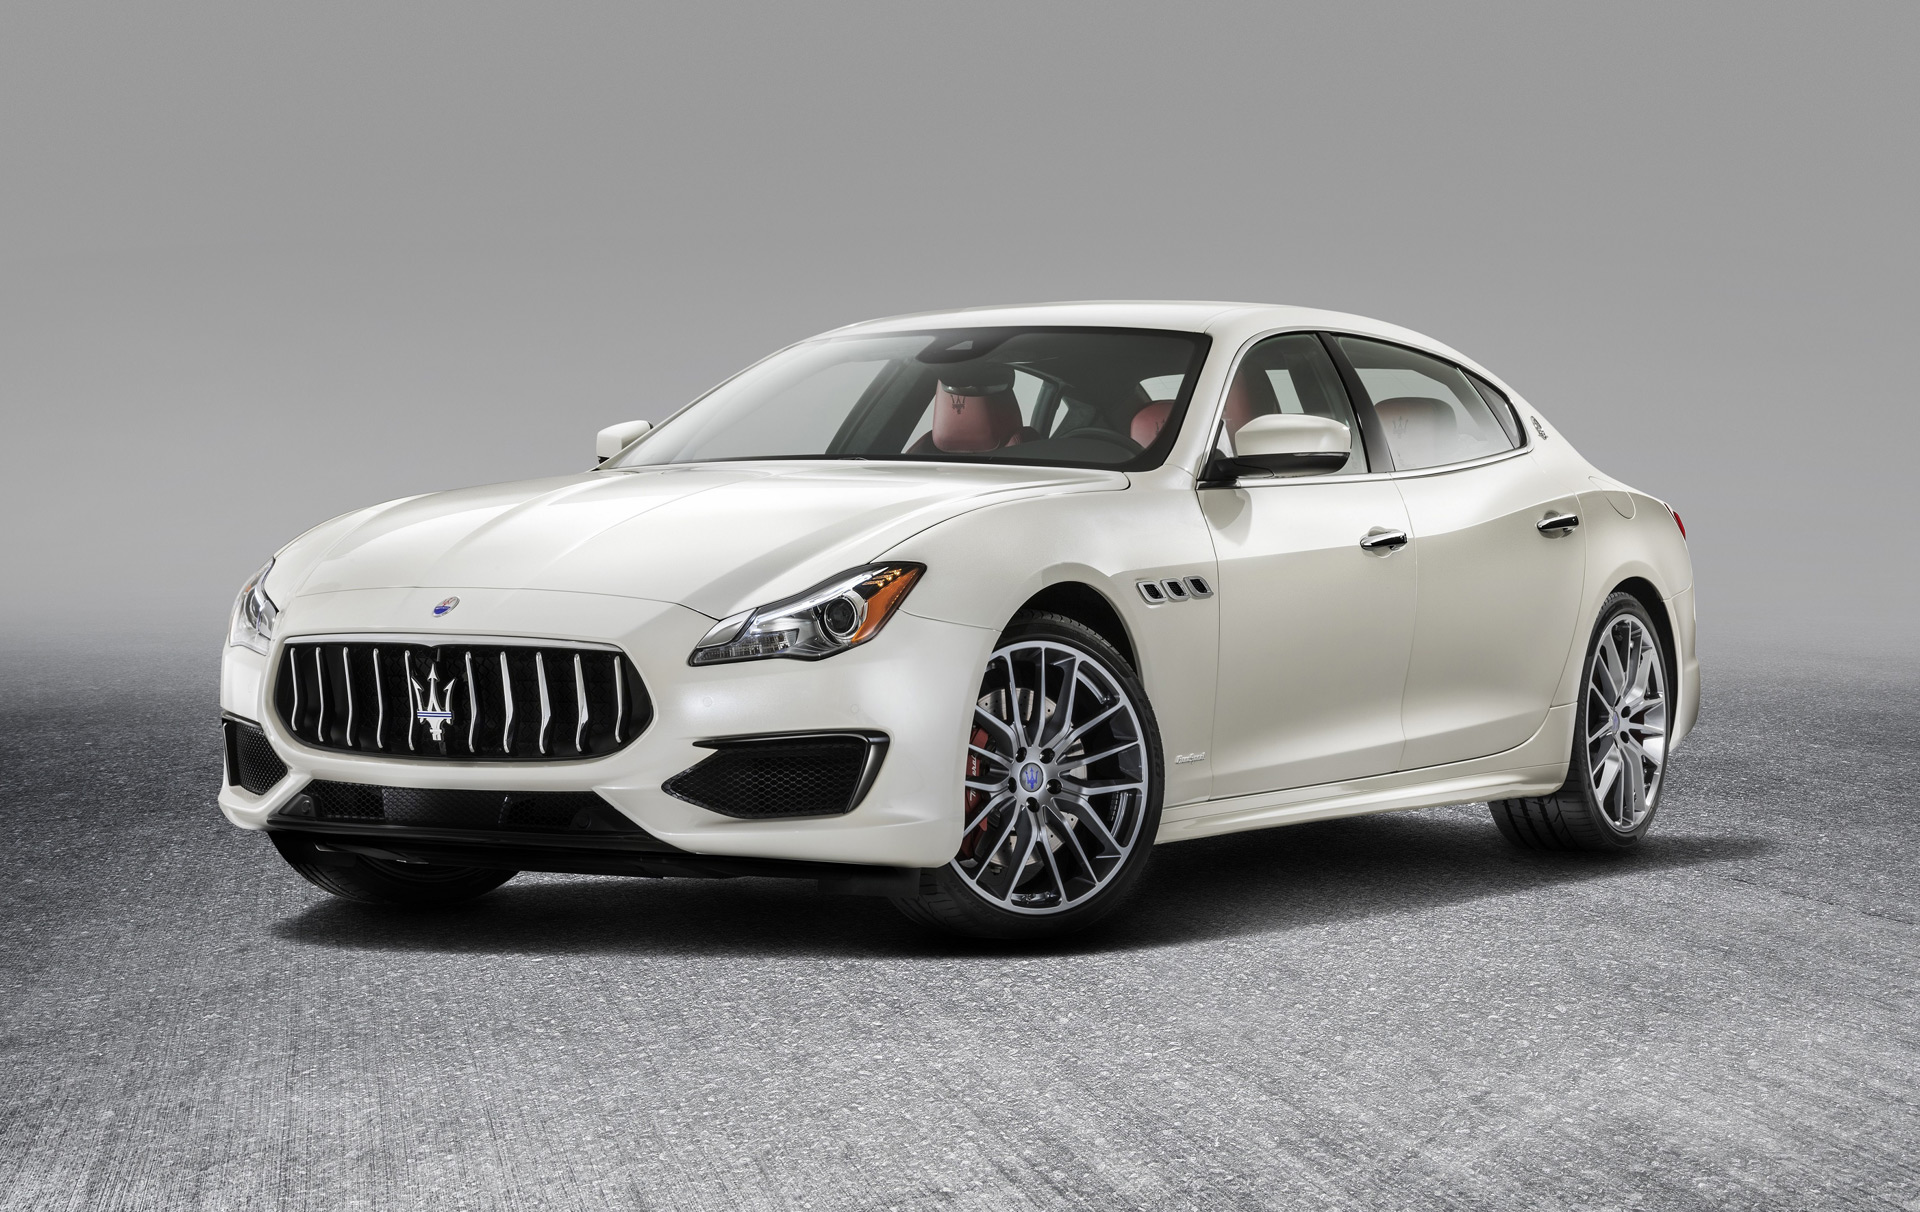 2014 2017 Maserati Quattroporte, Ghibli, And Levante Recalled For Fire  Risk: Nearly 40k Affected